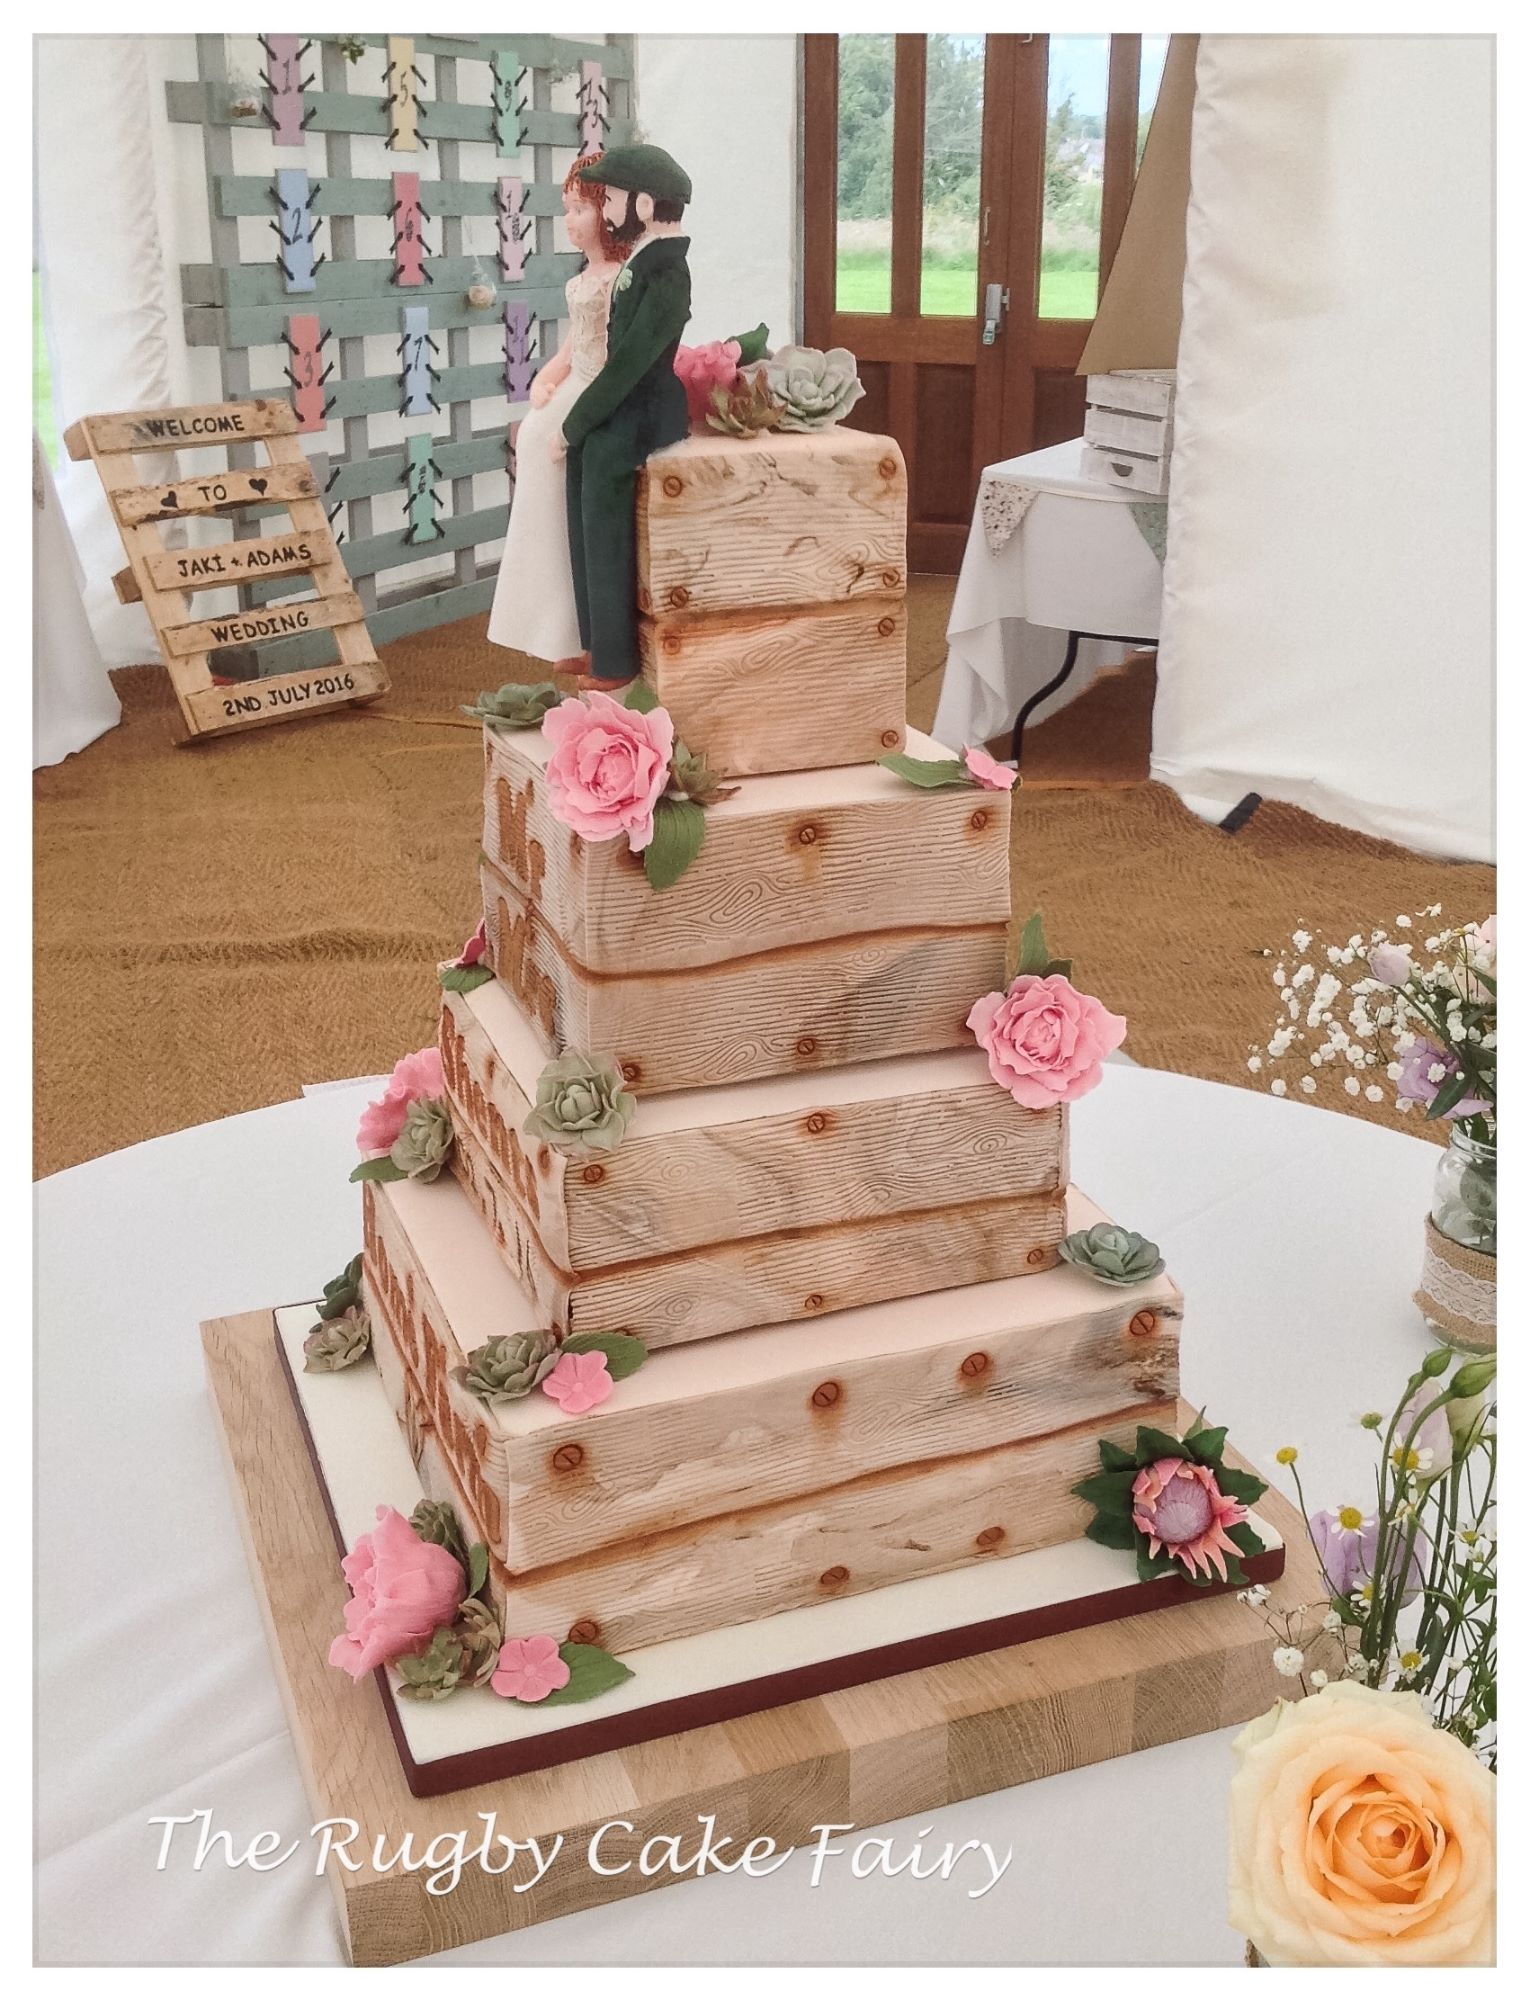 lemon crate wedding cake side image